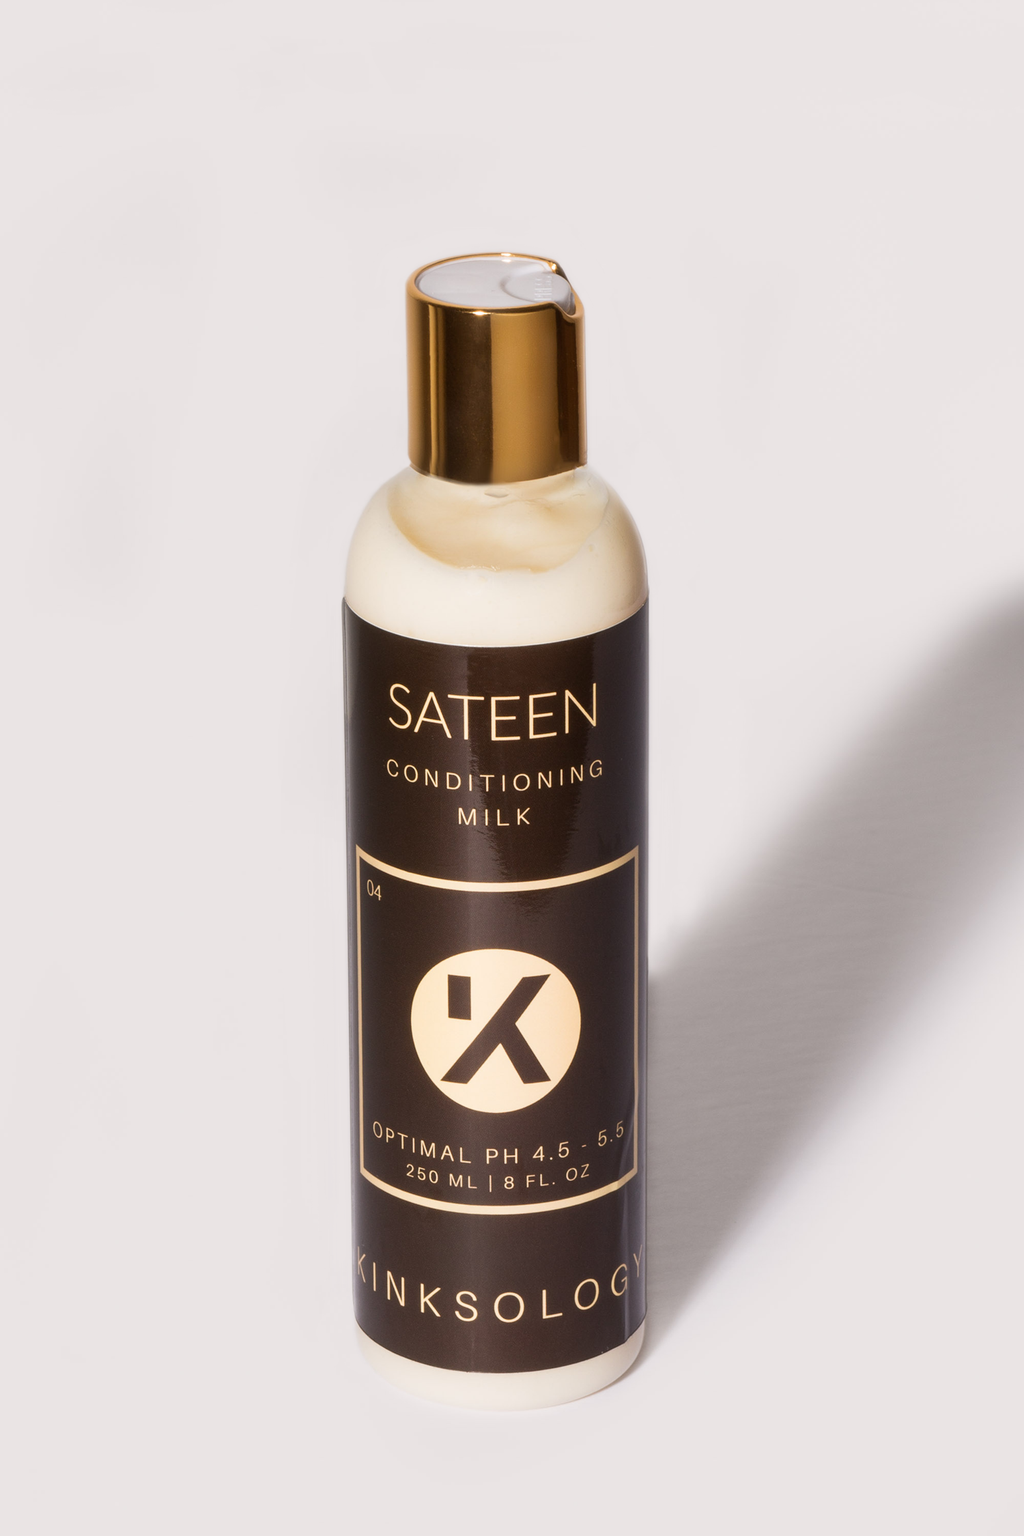 Kinksology Sateen Conditioning Milk